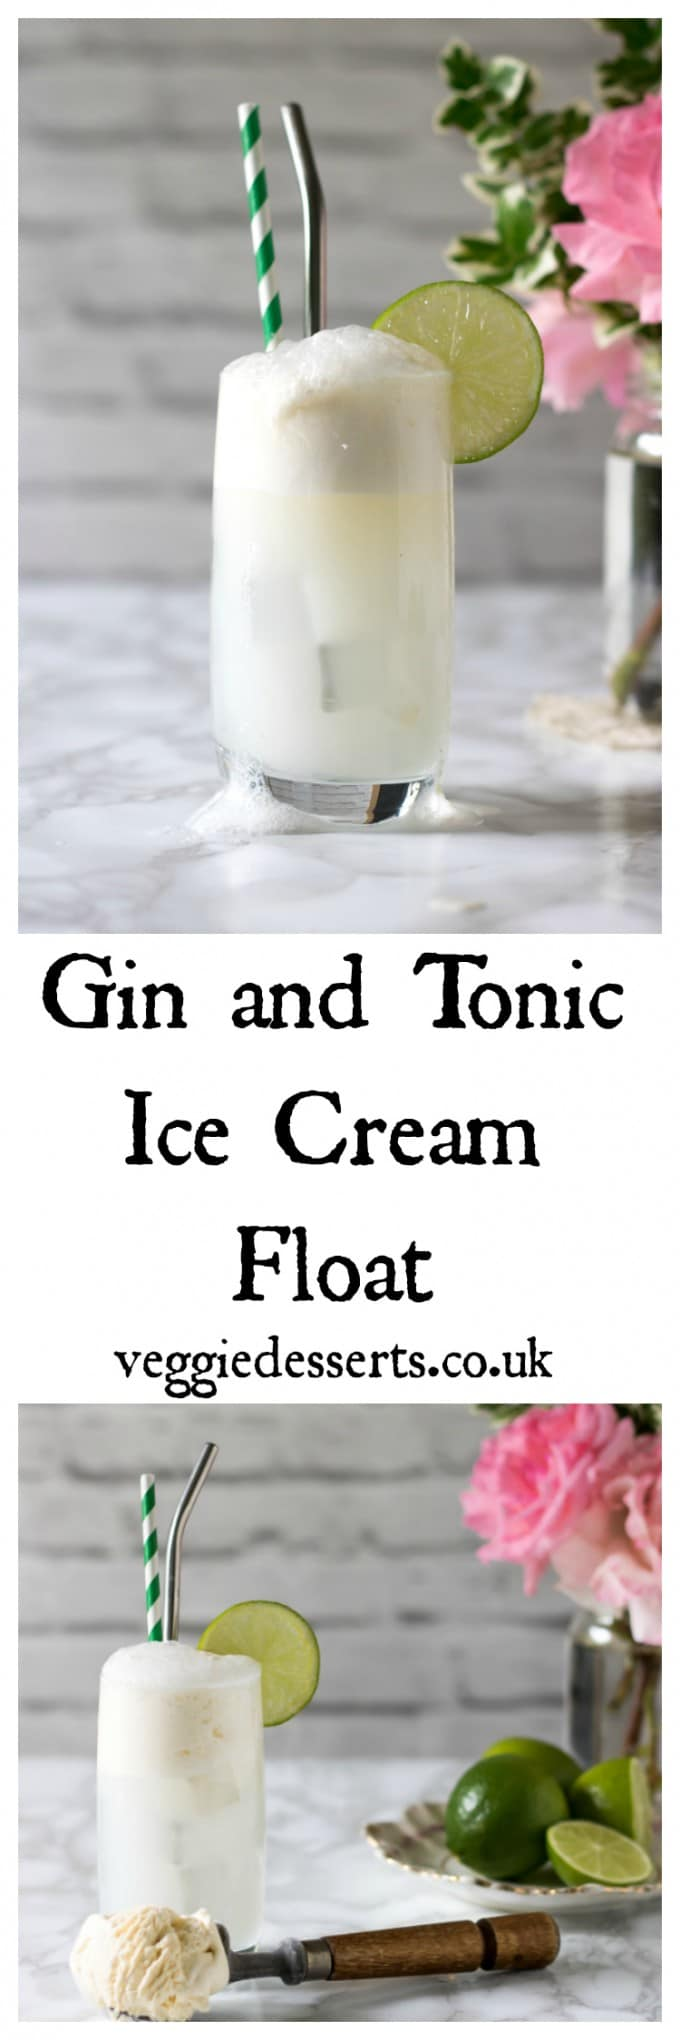 This gin and tonic ice cream float is a decadent grown up treat. It's frothy, creamy and full of botanical flavours. A fun boozy dessert. #ginandtonic #boozy #cocktail